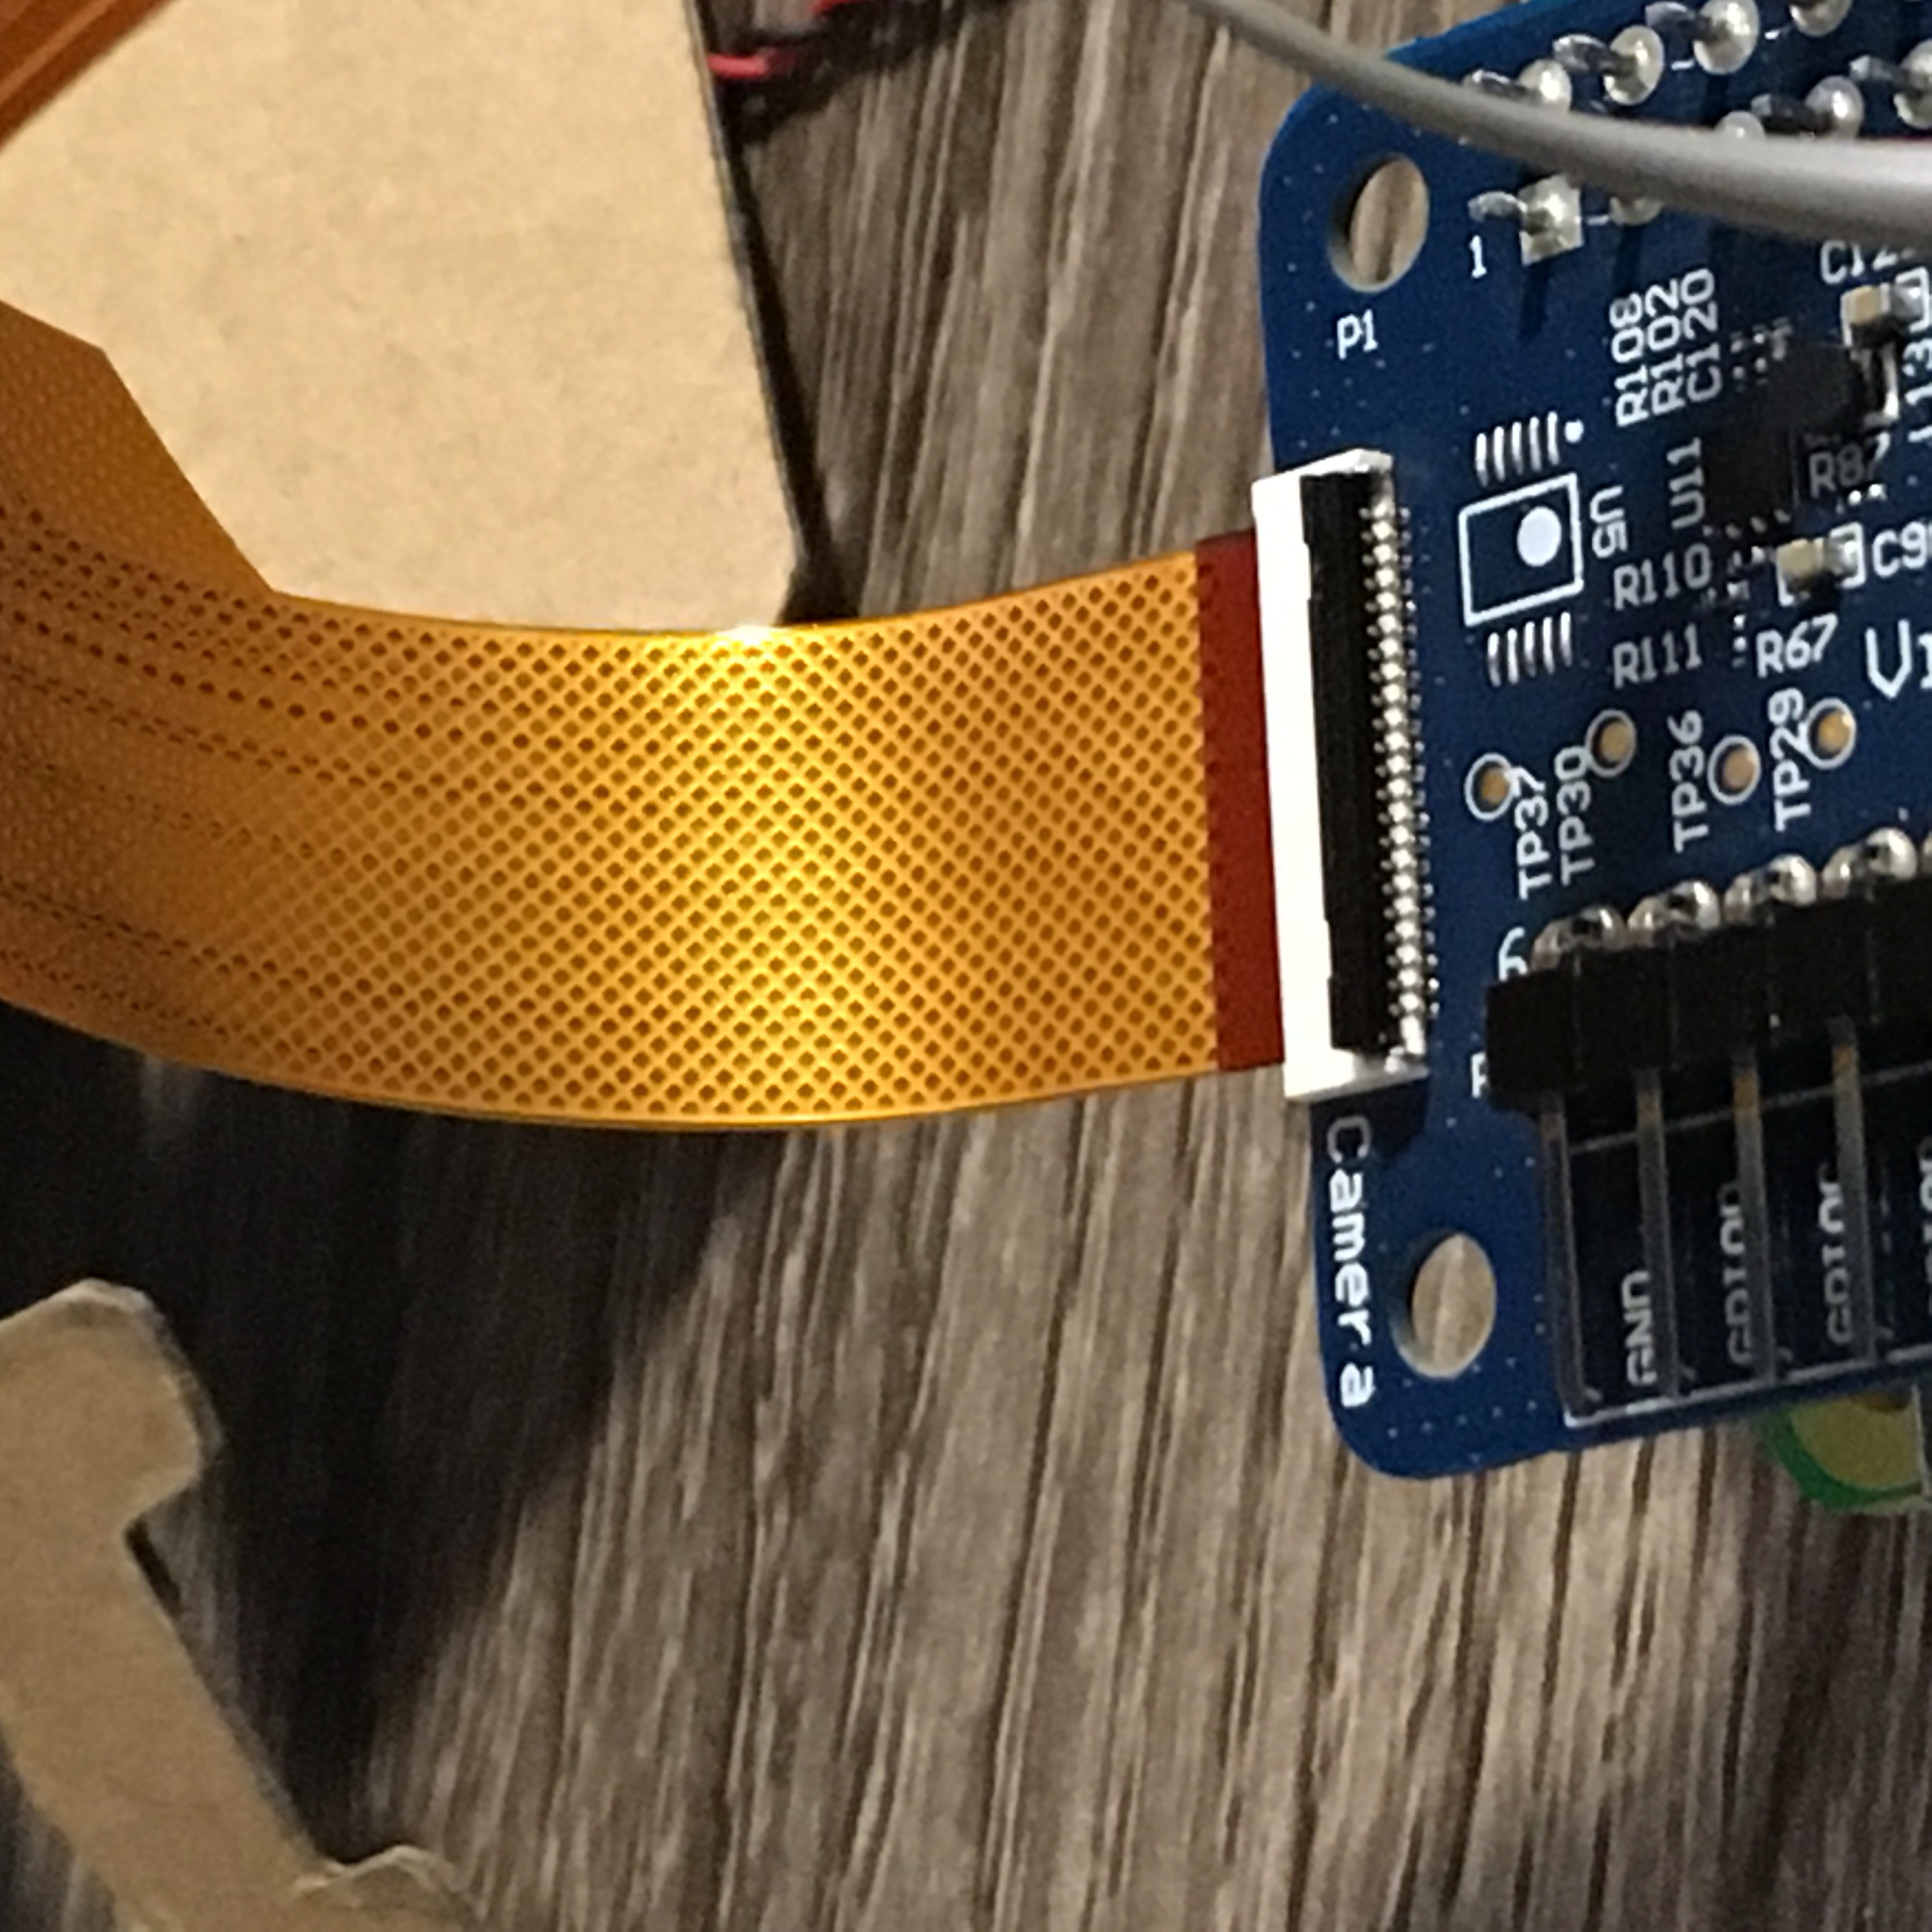 V2 raspberry pi camera not working with Vision Bonnet